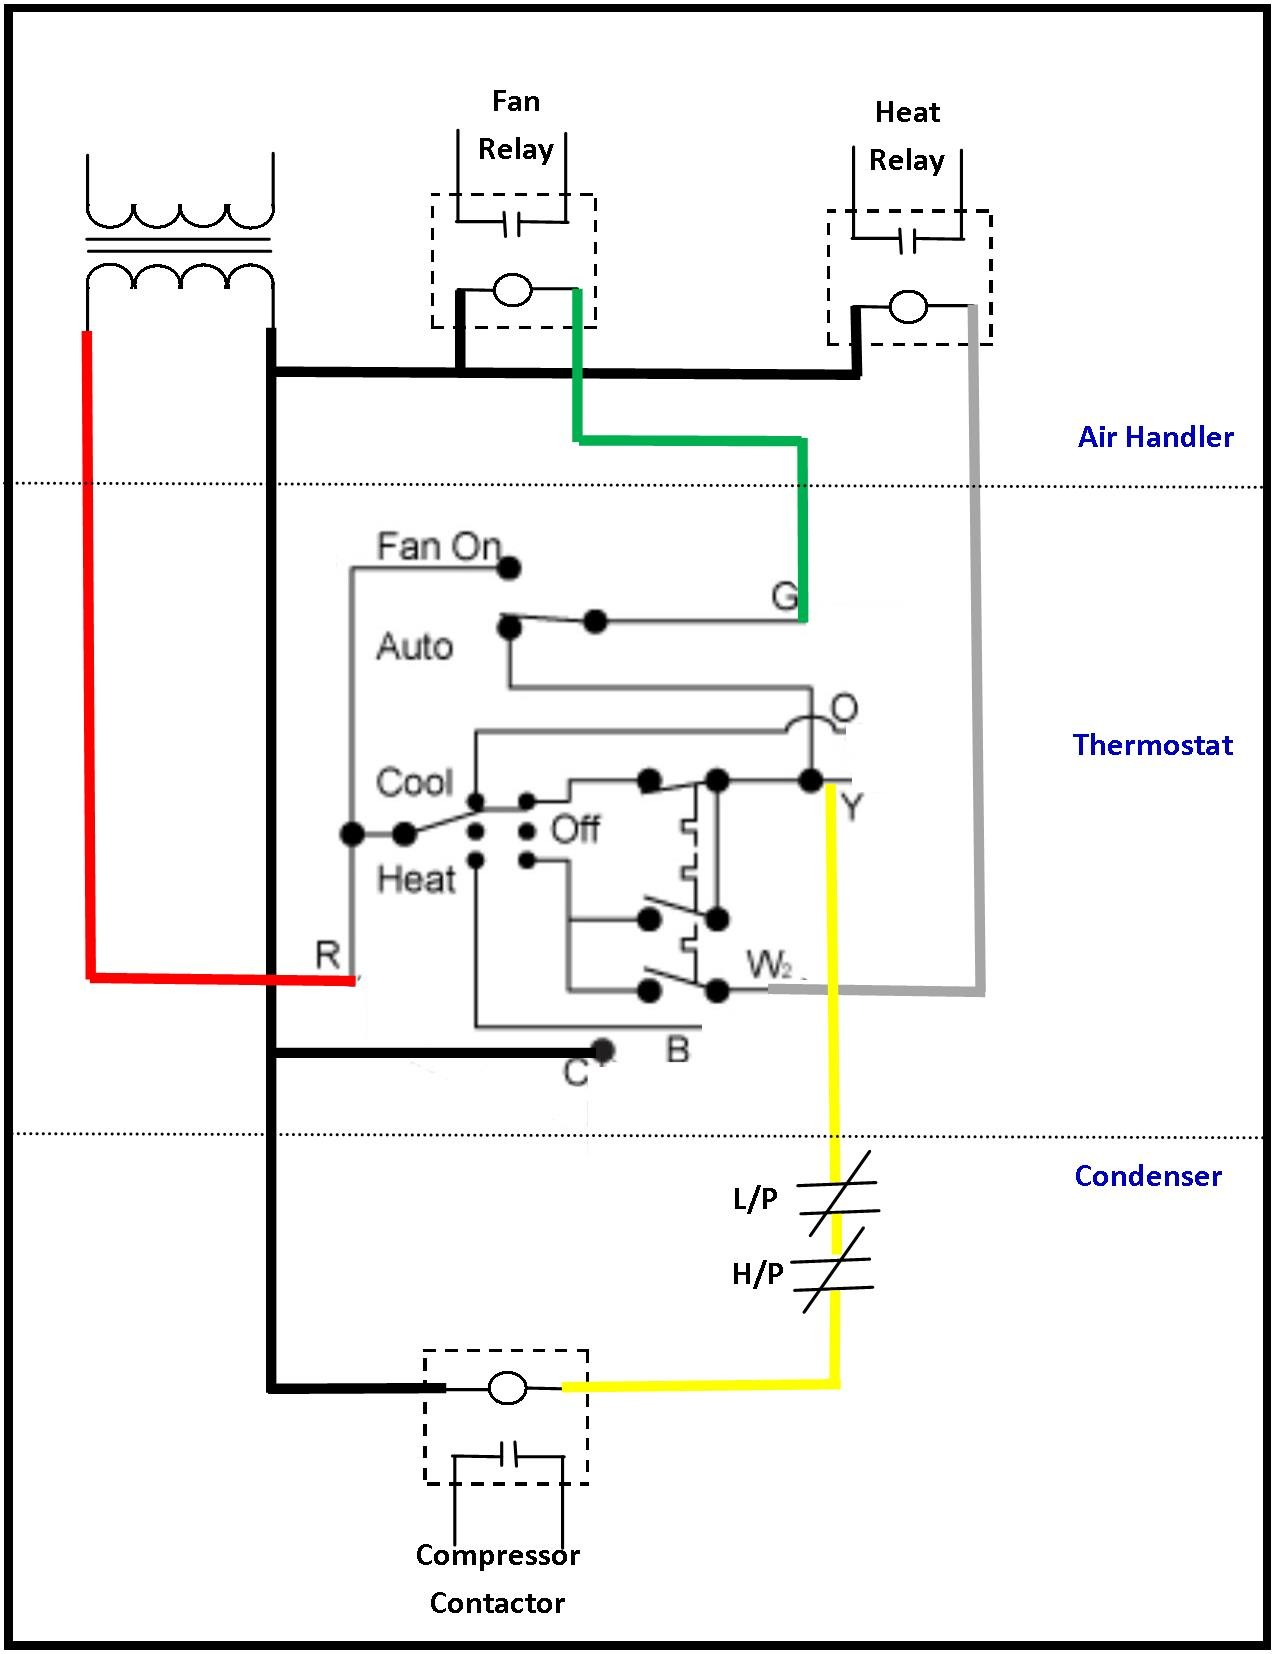 Central Air Fan Wire Diagram Electrical Wiring Diagrams Cpu Ac Motor Awesome Image Computer